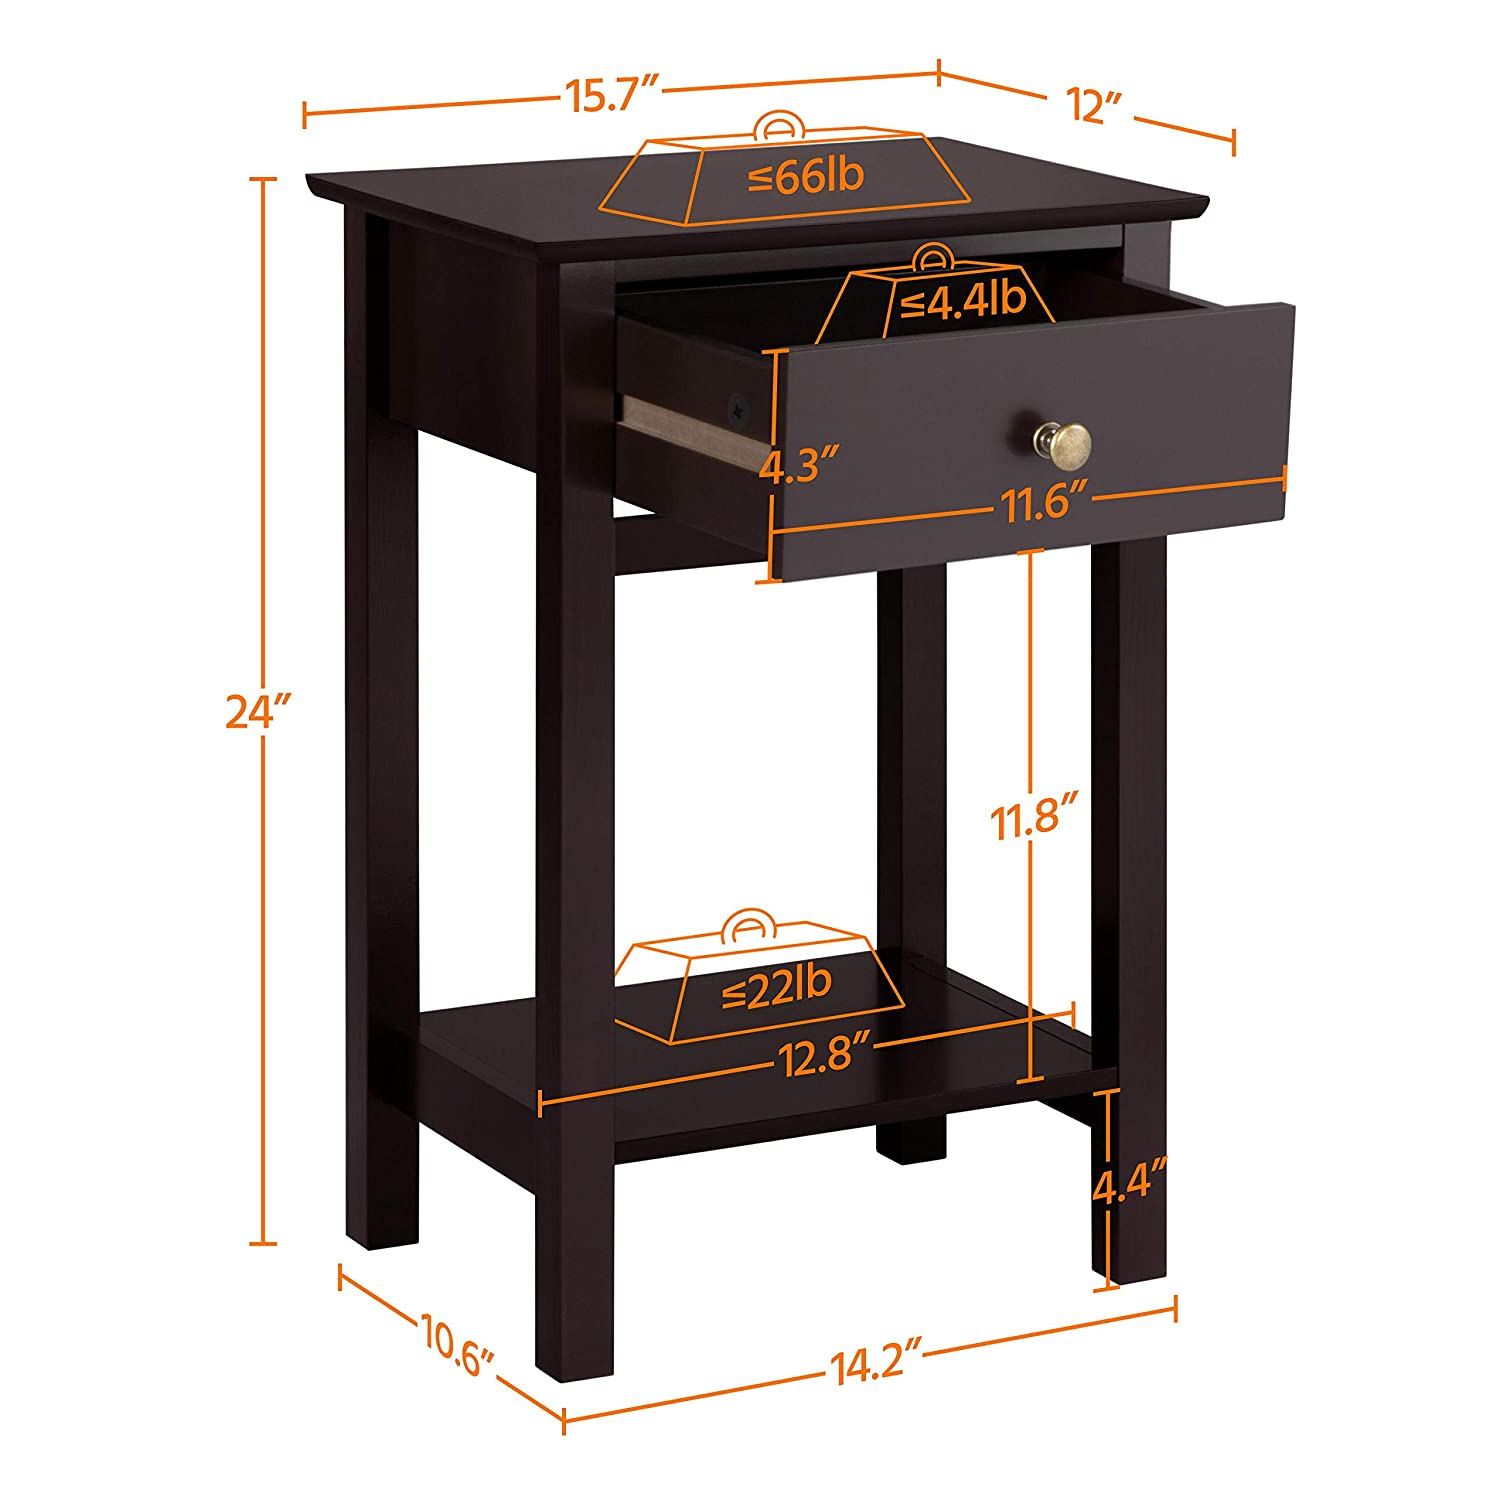 Yaheetech Nightstands Bedside Table Cabinet with Drawer Storage Shelf for Bedroom Set of 2 Espresso